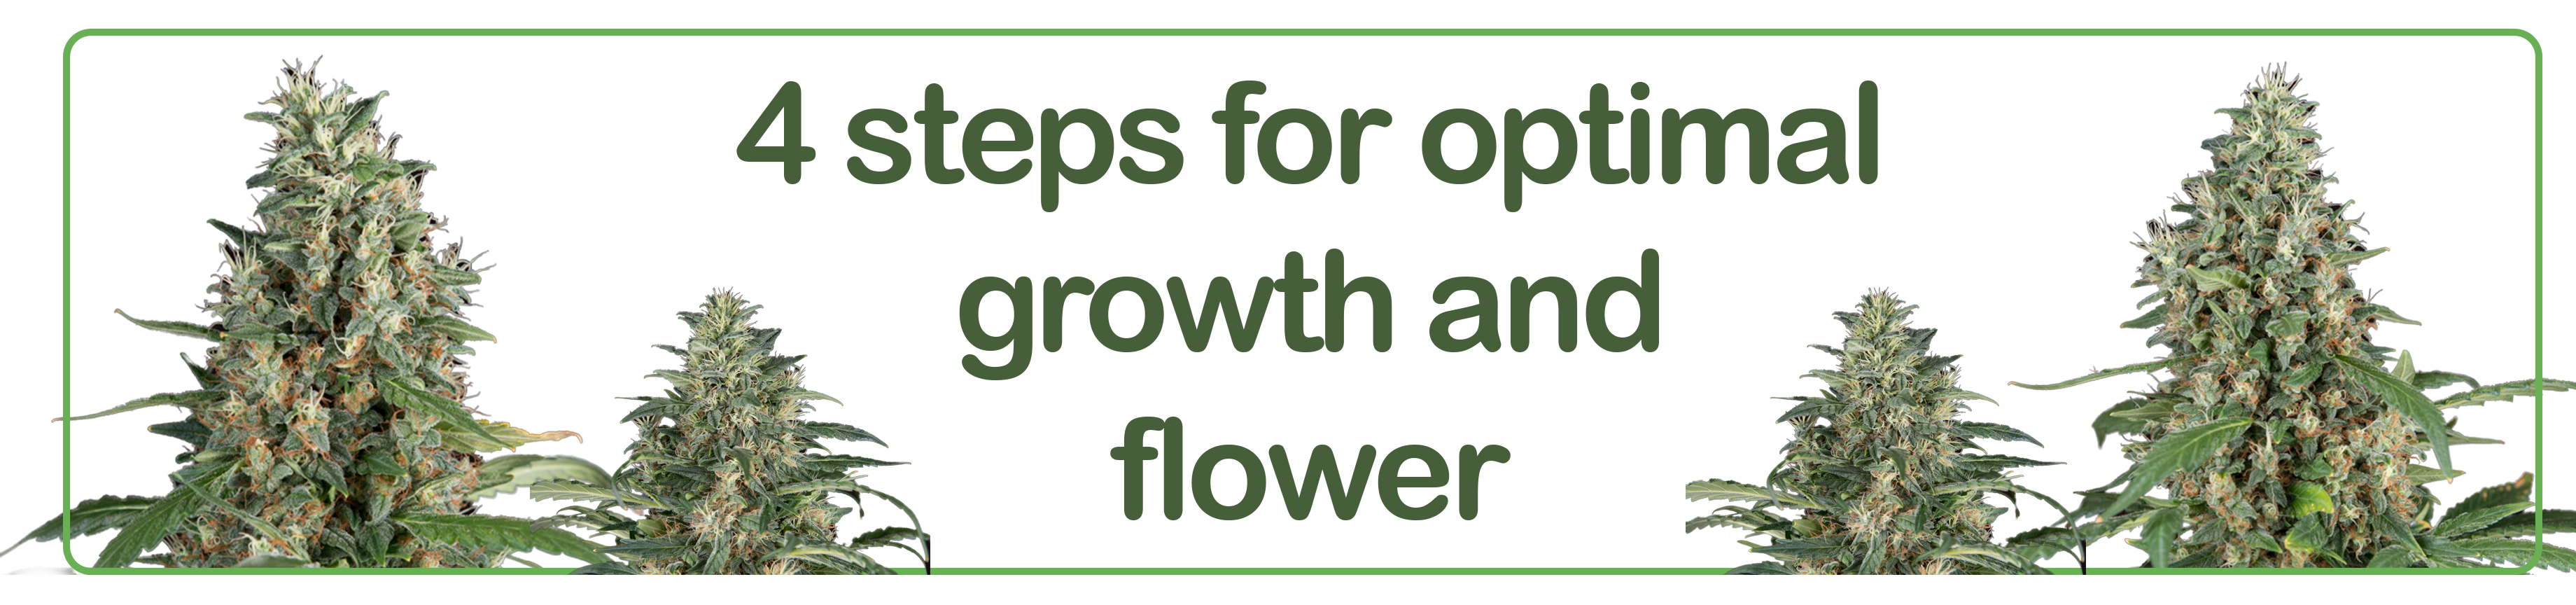 4 steps organic nutrients for optimal cannabis growth and flower